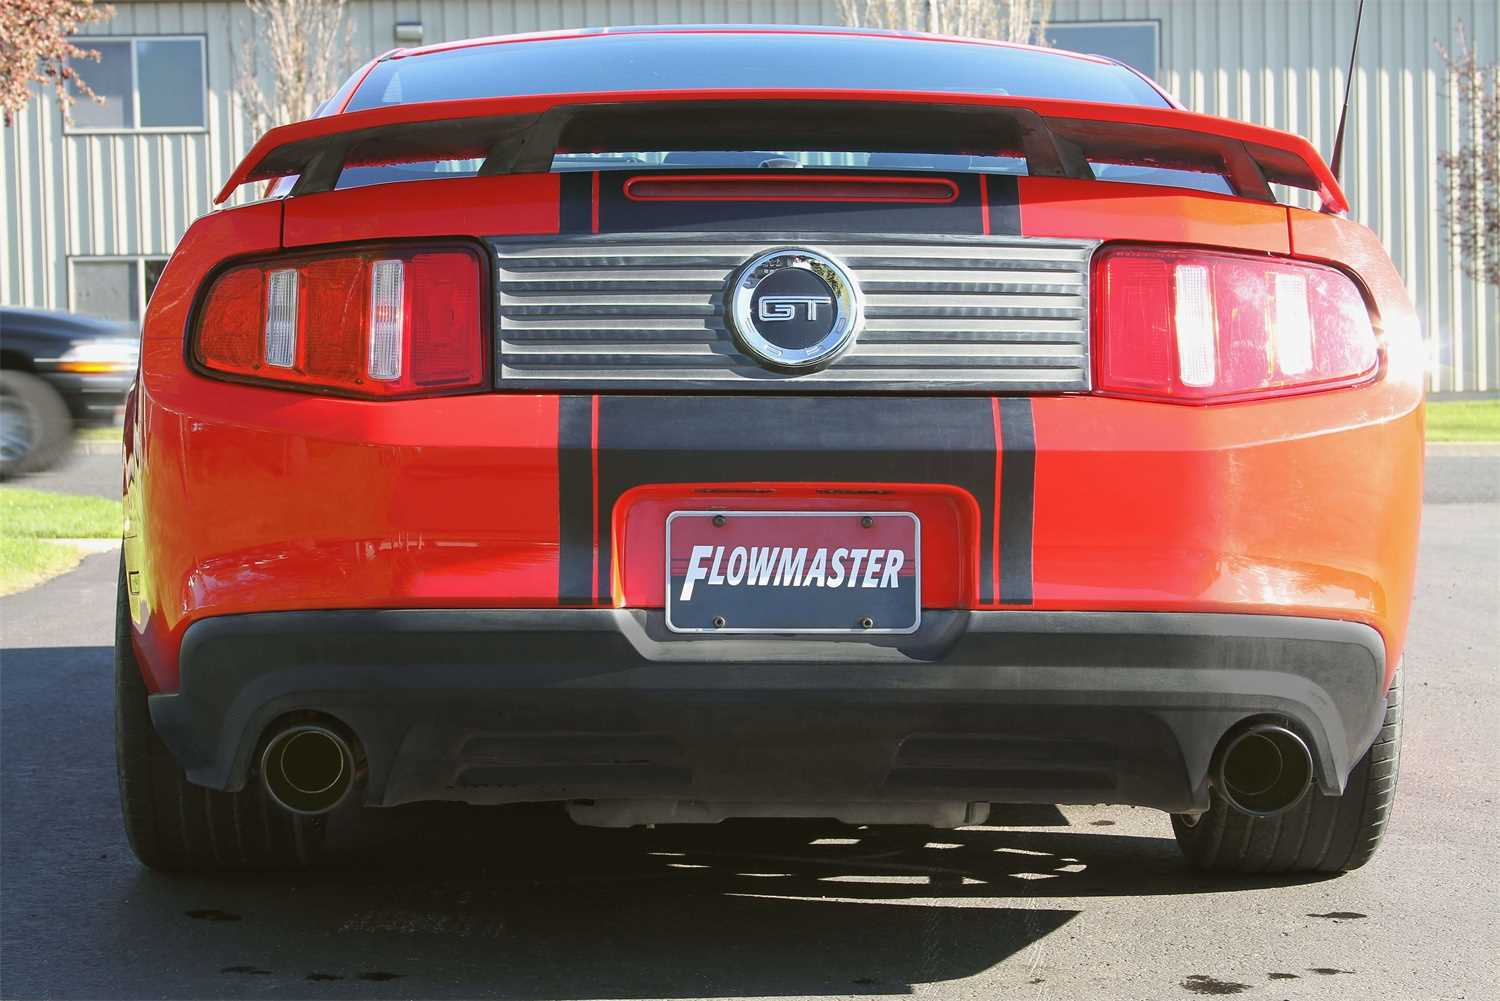 717879 Flowmaster FlowFX Axle Back Exhaust System